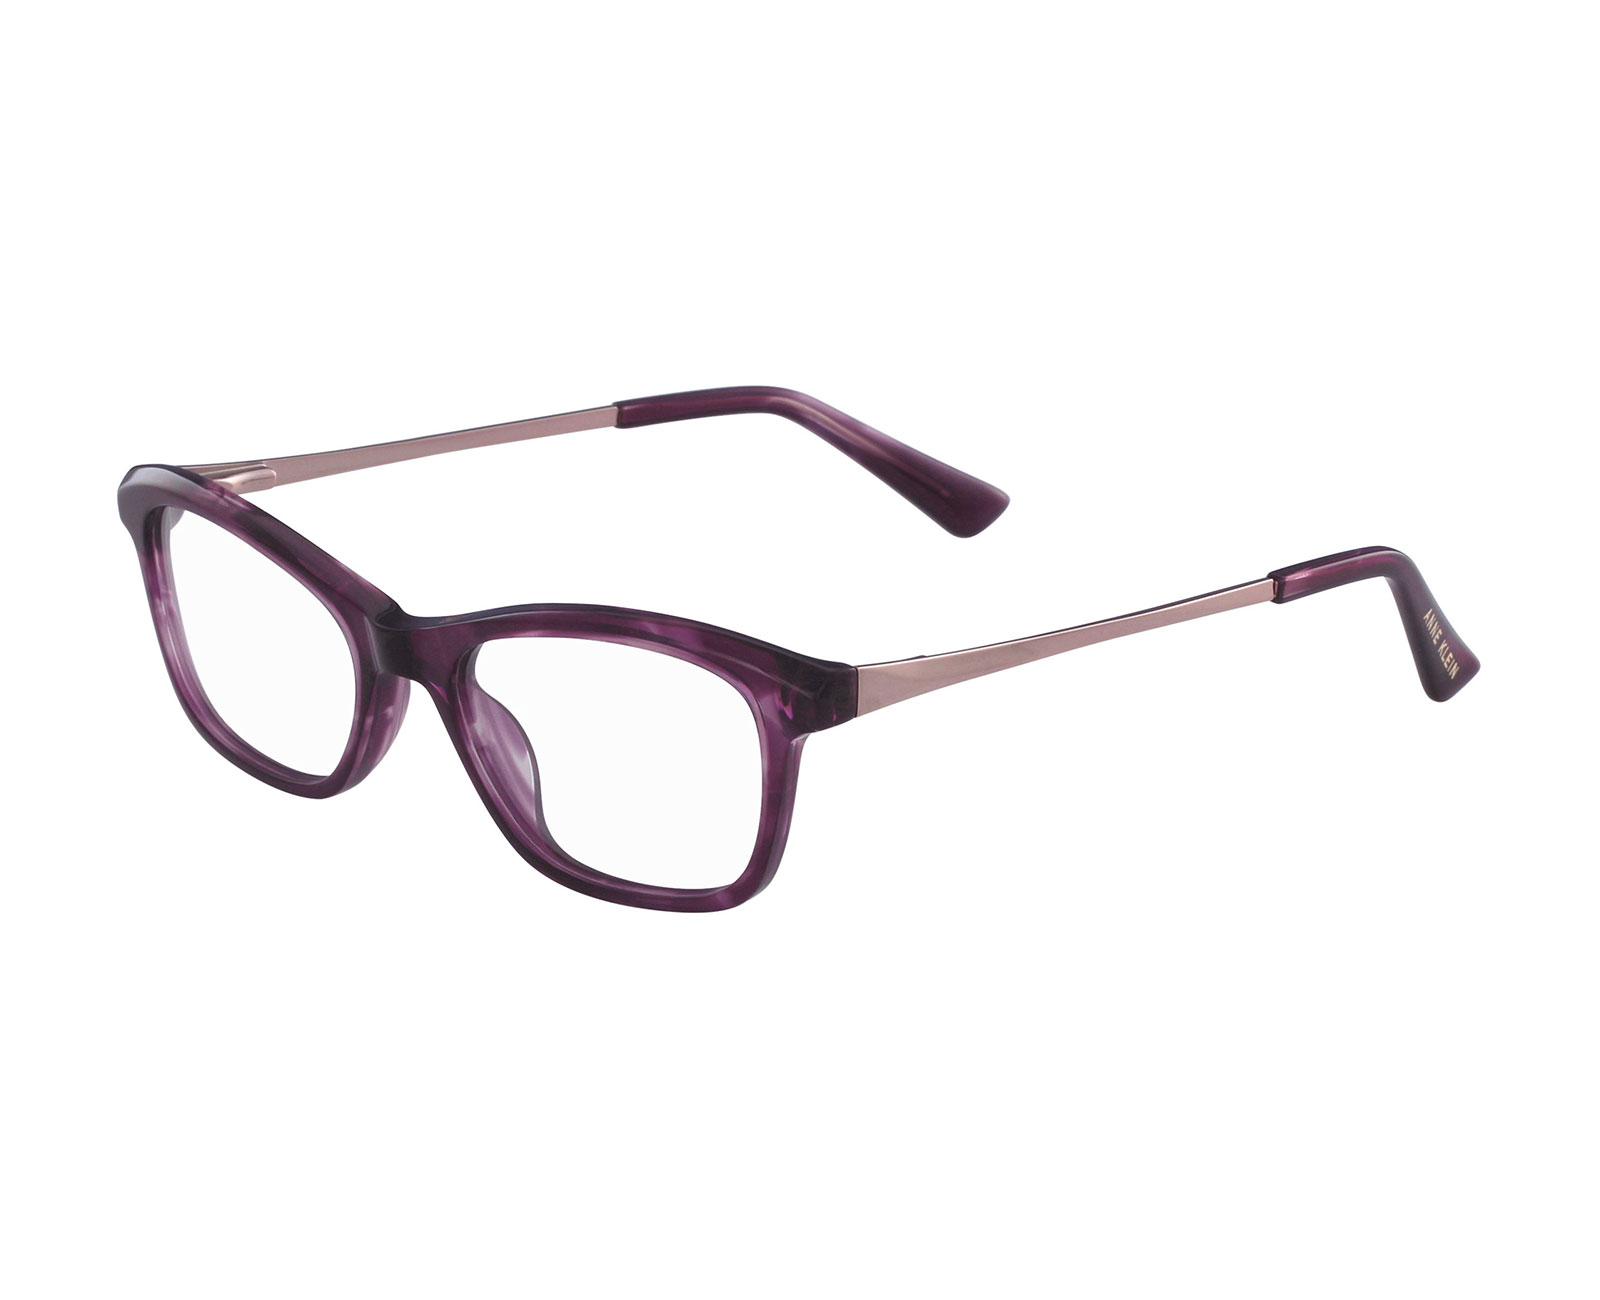 Anne Klein 5064 in Plum Horn